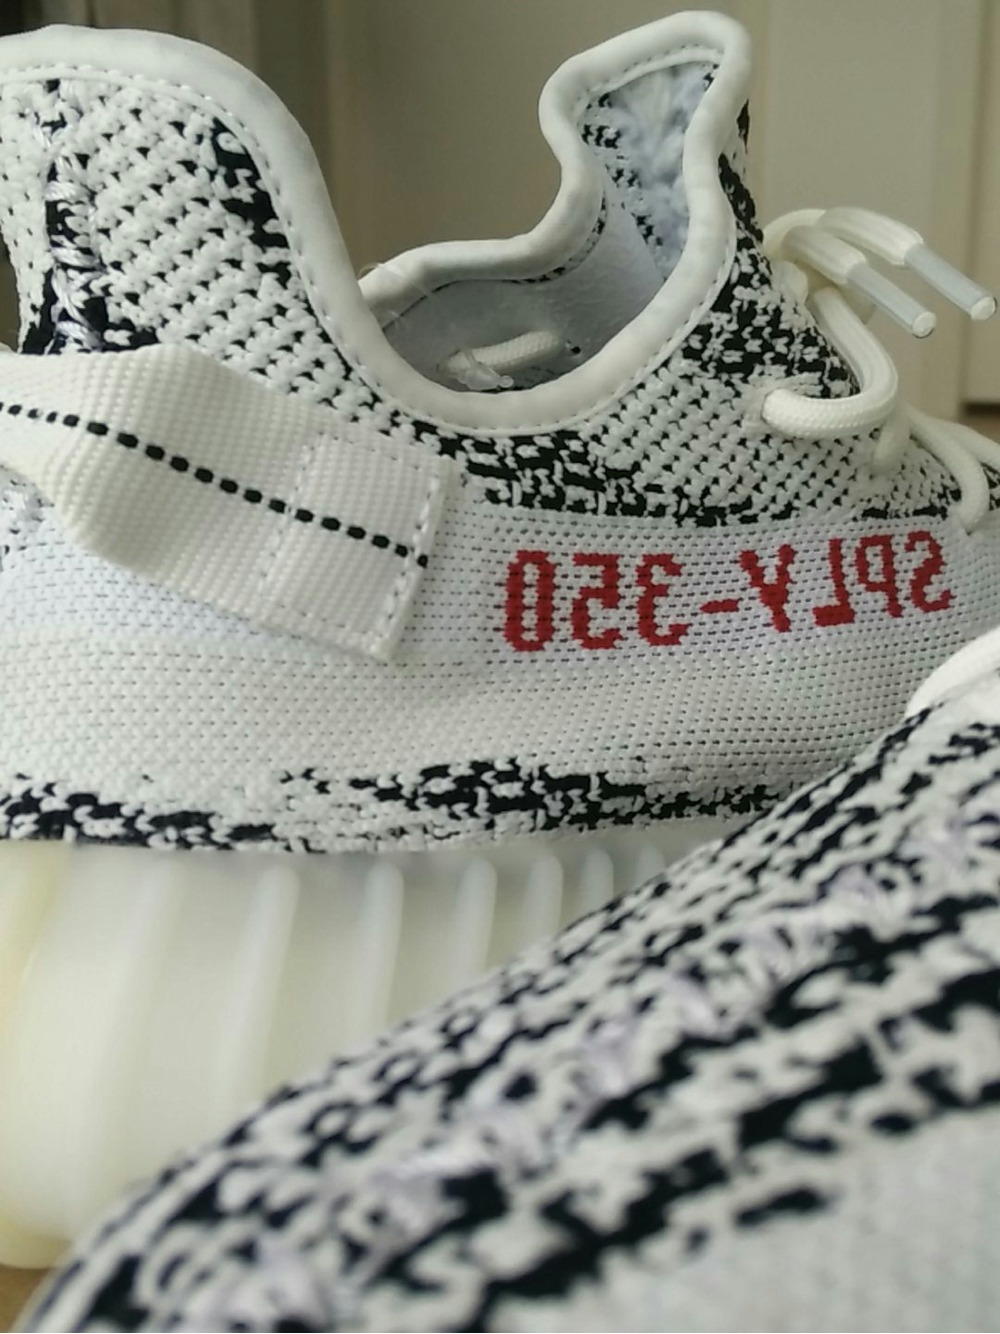 Purchase Yeezy boost 350 v2 'Zebra' store list uk Women